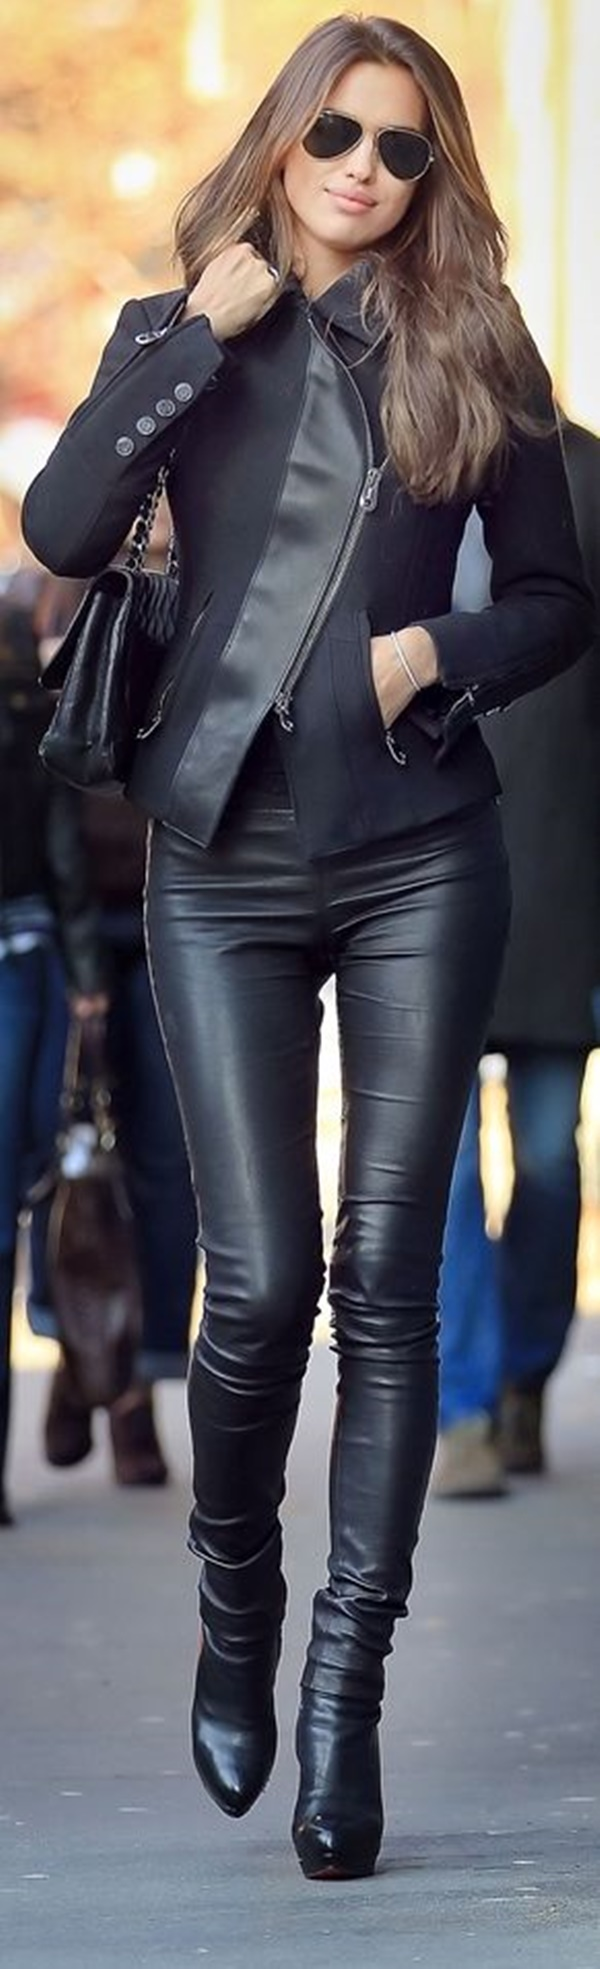 Leather Pants Outfits Ideas (21)